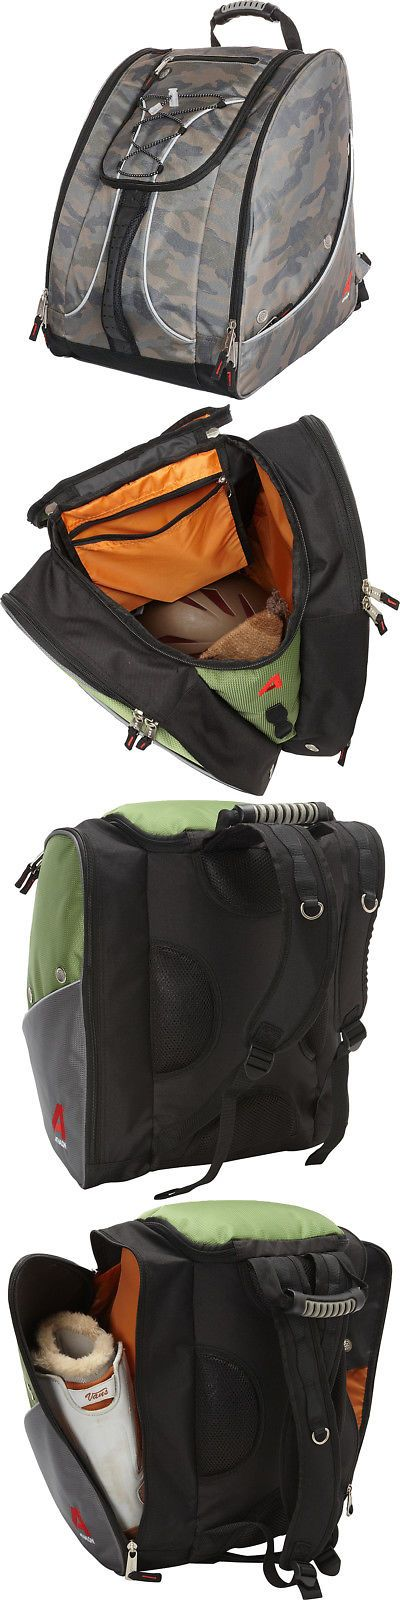 Bags and Backpacks 21229: Athalon Tri-Athalon Boot Bag 6 Colors Ski And Snowboard Bag New -> BUY IT NOW ONLY: $84.99 on eBay!